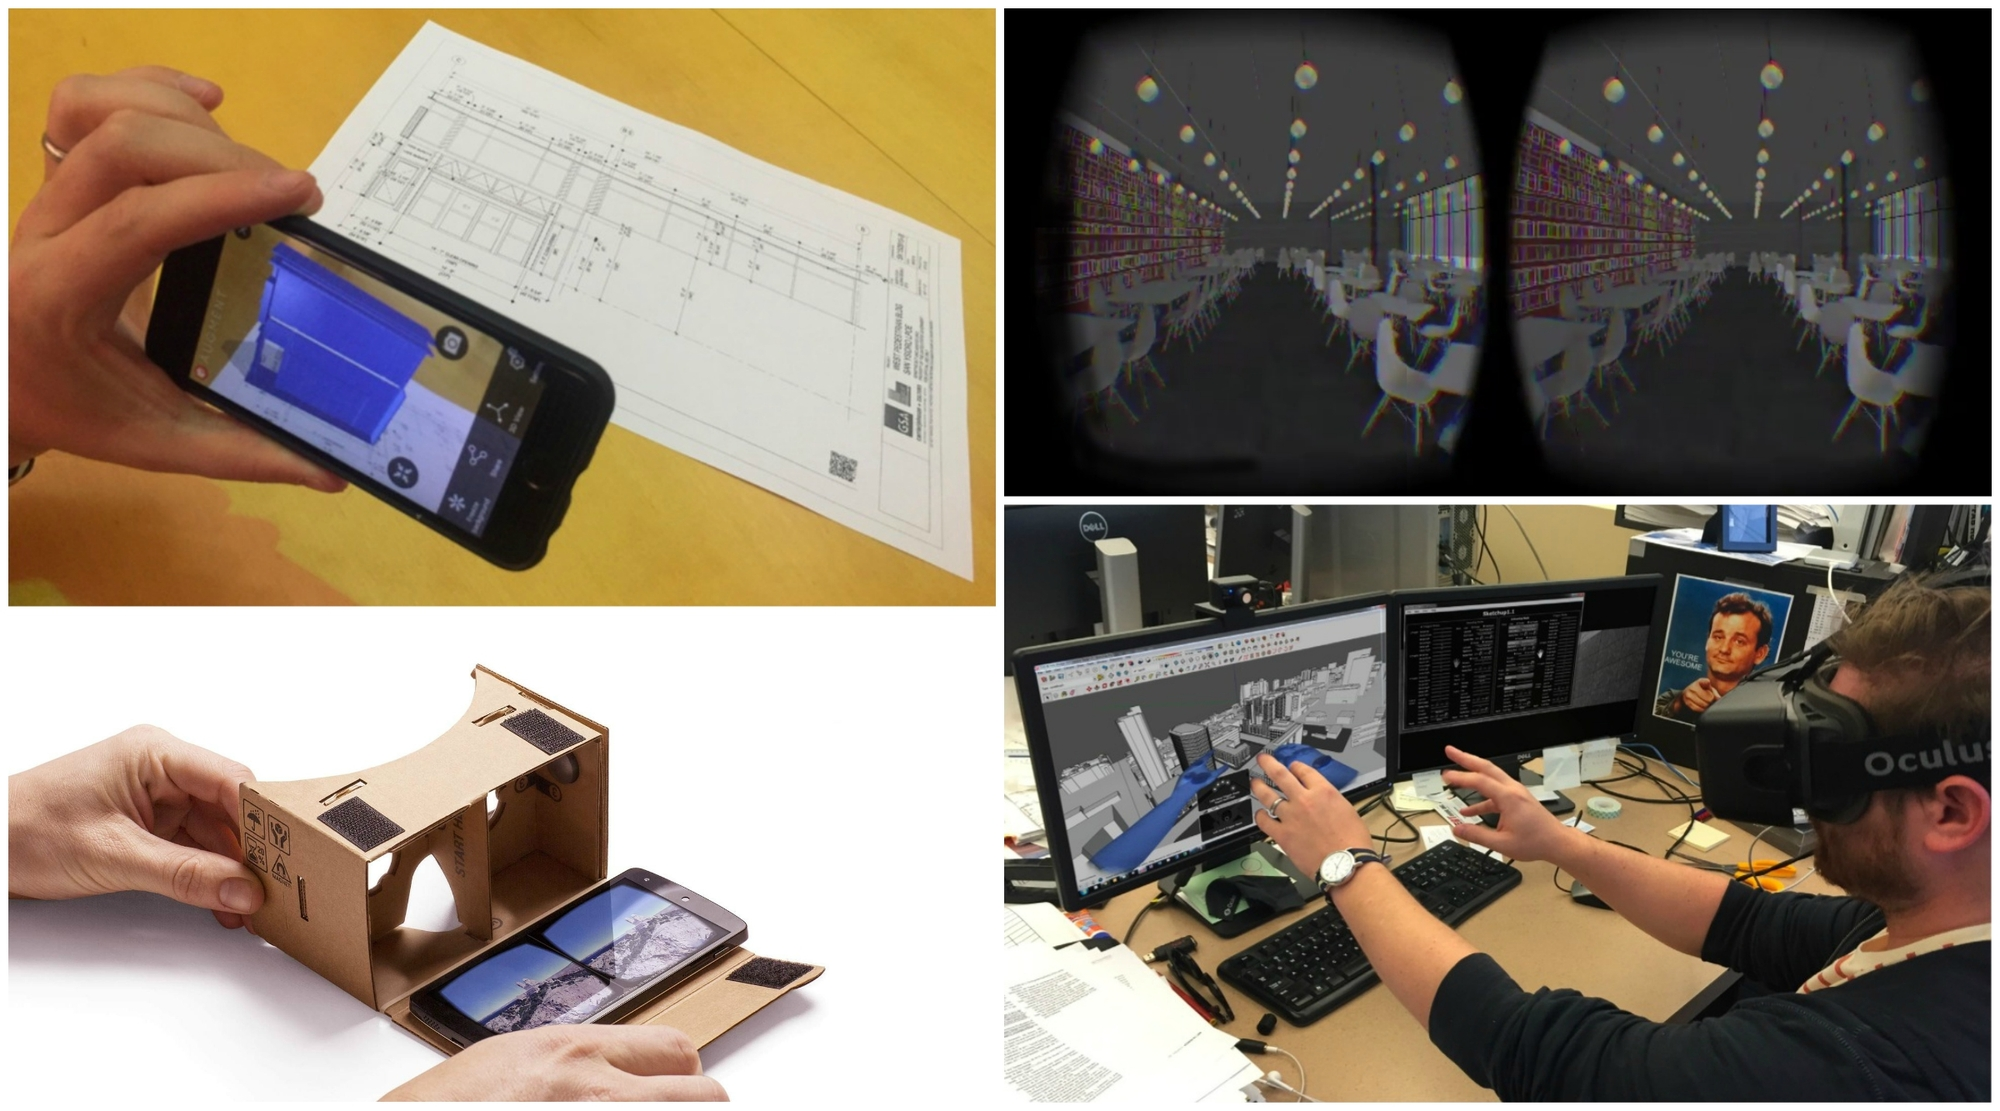 4 ways virtual and augmented reality will revolutionize for Augmented reality